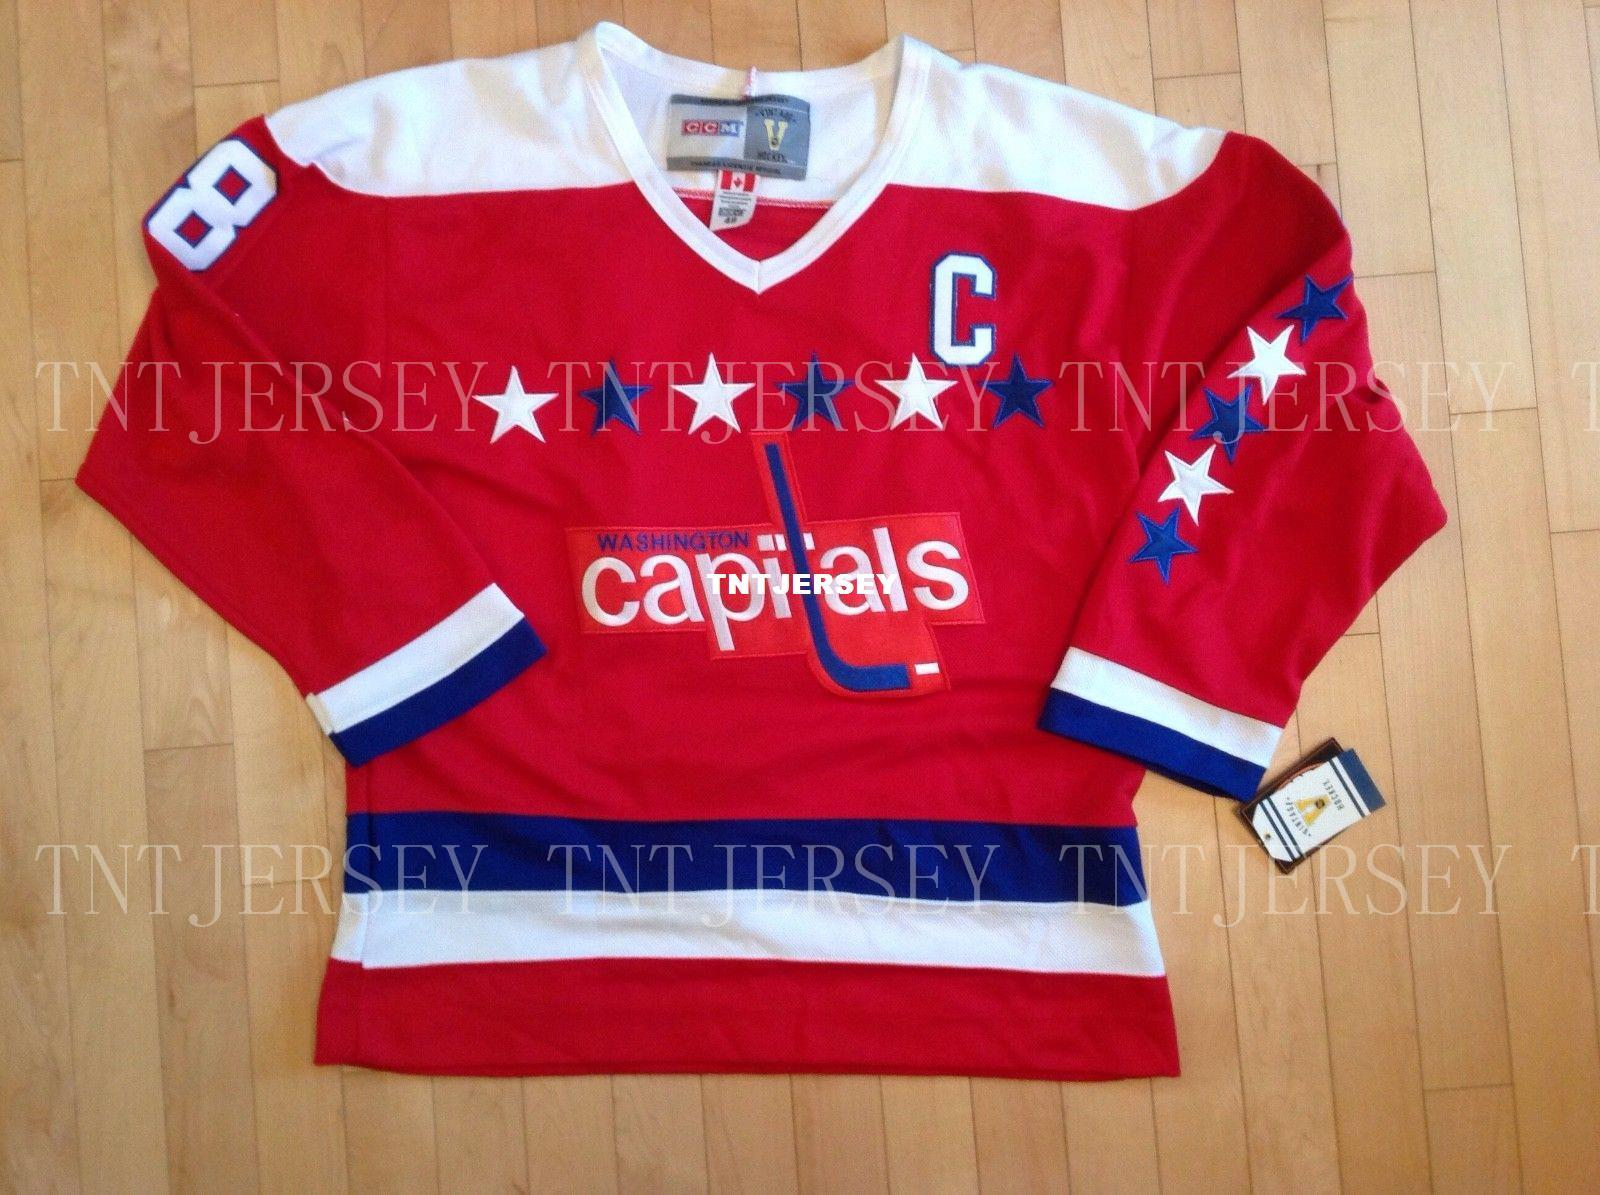 5b6cea08a2c 2019 Cheap Custom Vintage Washington Capitals Alex Ovechkin Jersey CCM Mens  Personalized Stitching Jerseys From Tntjersey